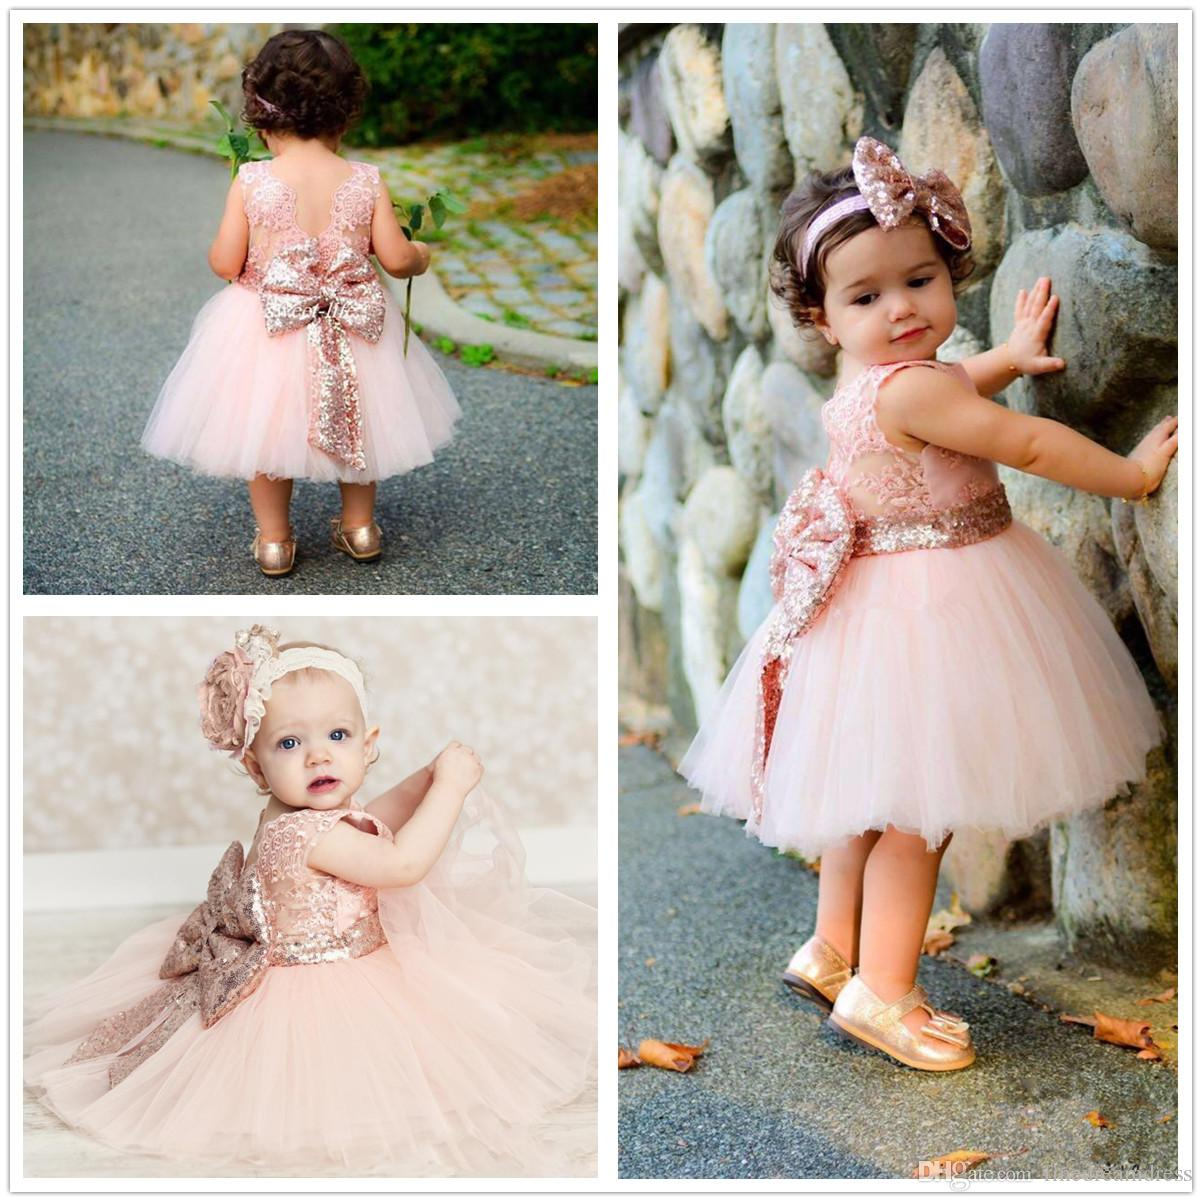 1cd76b812e4 ... Christening Dresses Sequins Knee Length Tutu Flower Girl Dresses Big Bow  Cute Birthday Party Dresses Mother Of The Groom Dresses Semi Formal Dresses  ...